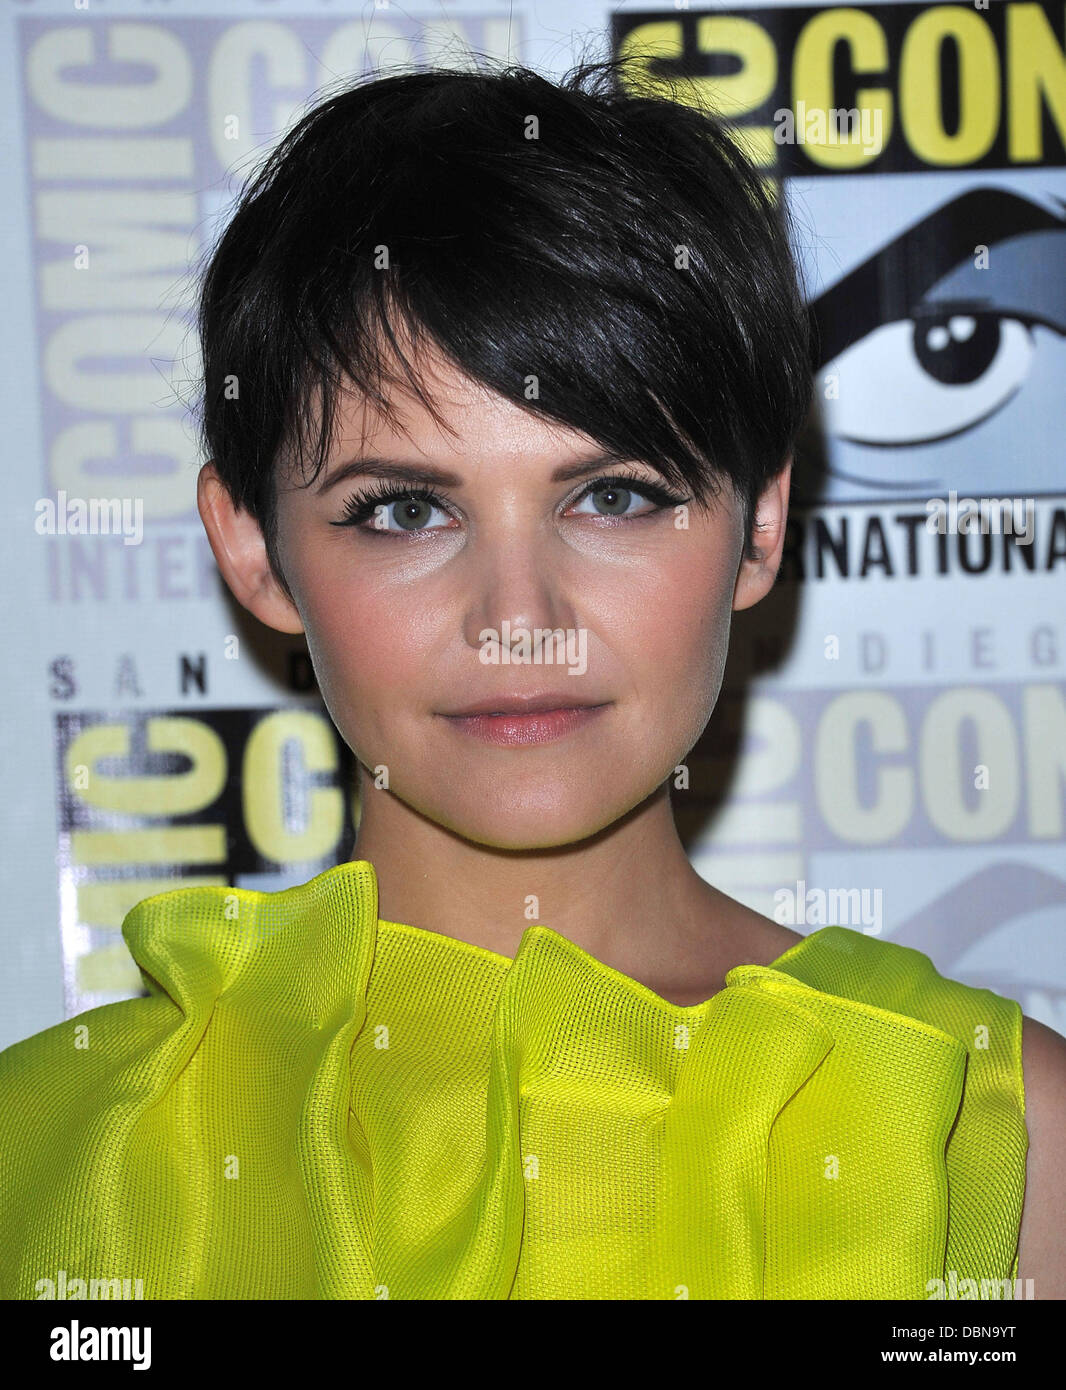 Ginnifer Goodwin At The Once Upon A Time Press Conference At The